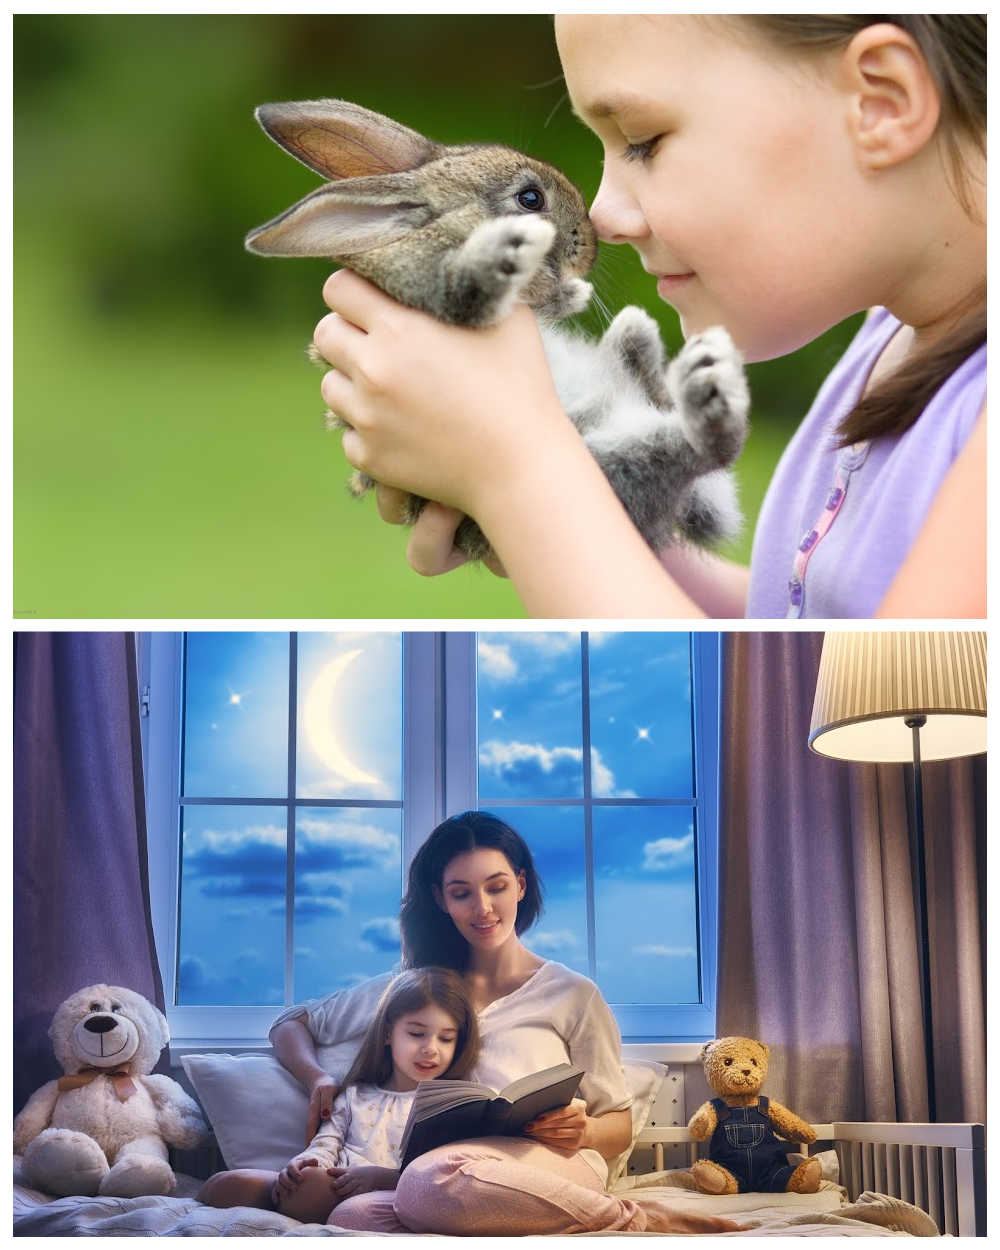 Girl with rabbit and mother reading a story to a child.